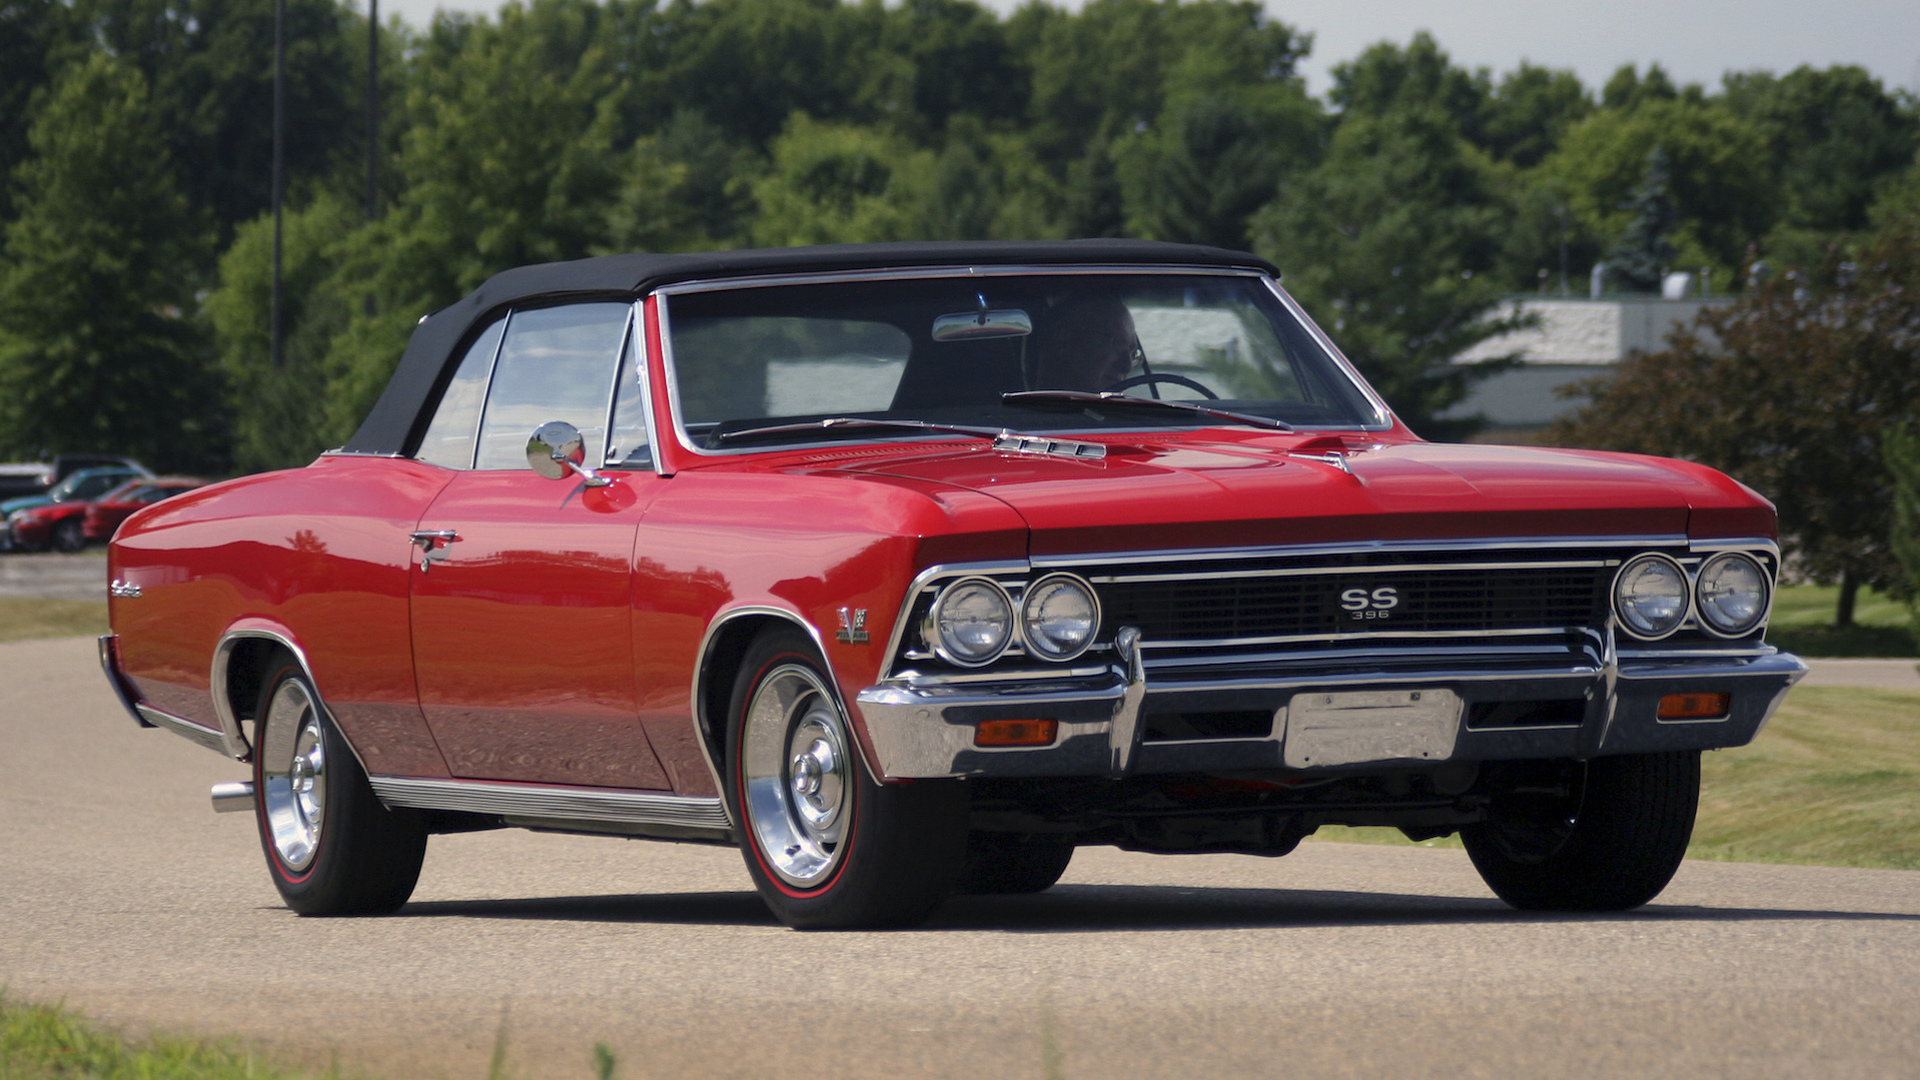 5 best Chevy Chevelles of all time